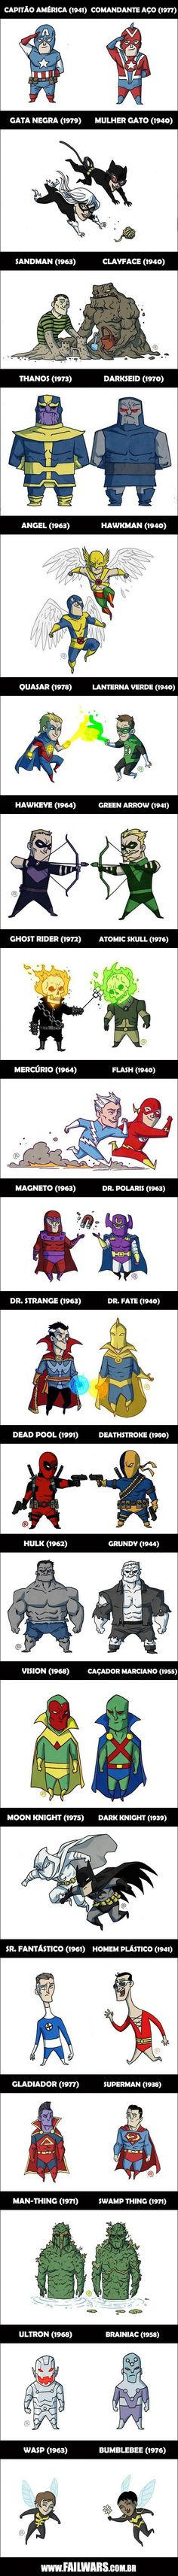 23 personagens equivalentes da DC e da Marvel! (2 de 2), via failwars;